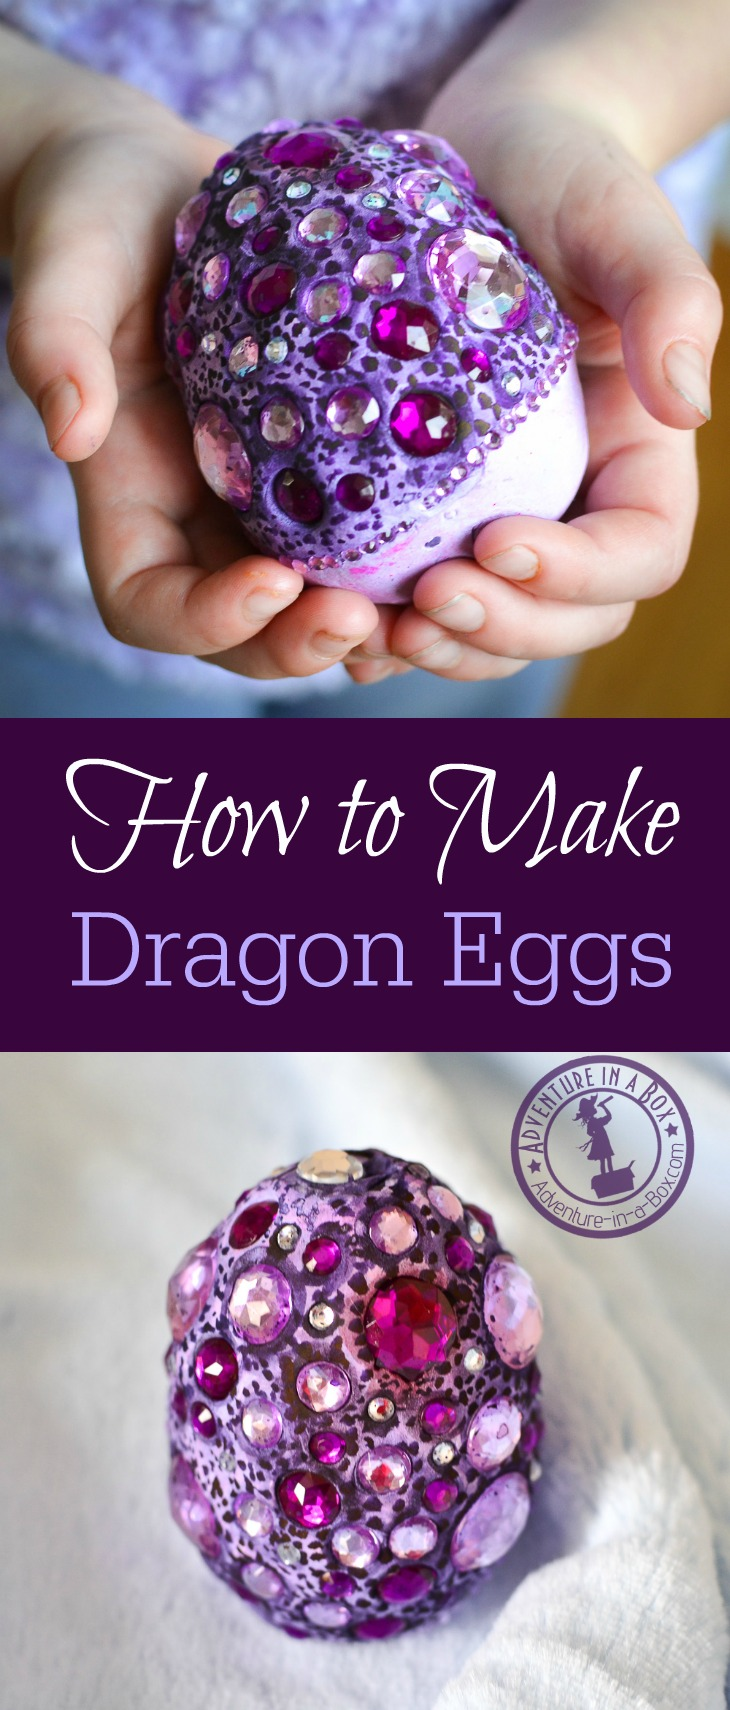 Make your own treasure! Jeweled dragon eggs, even the kids can make them.